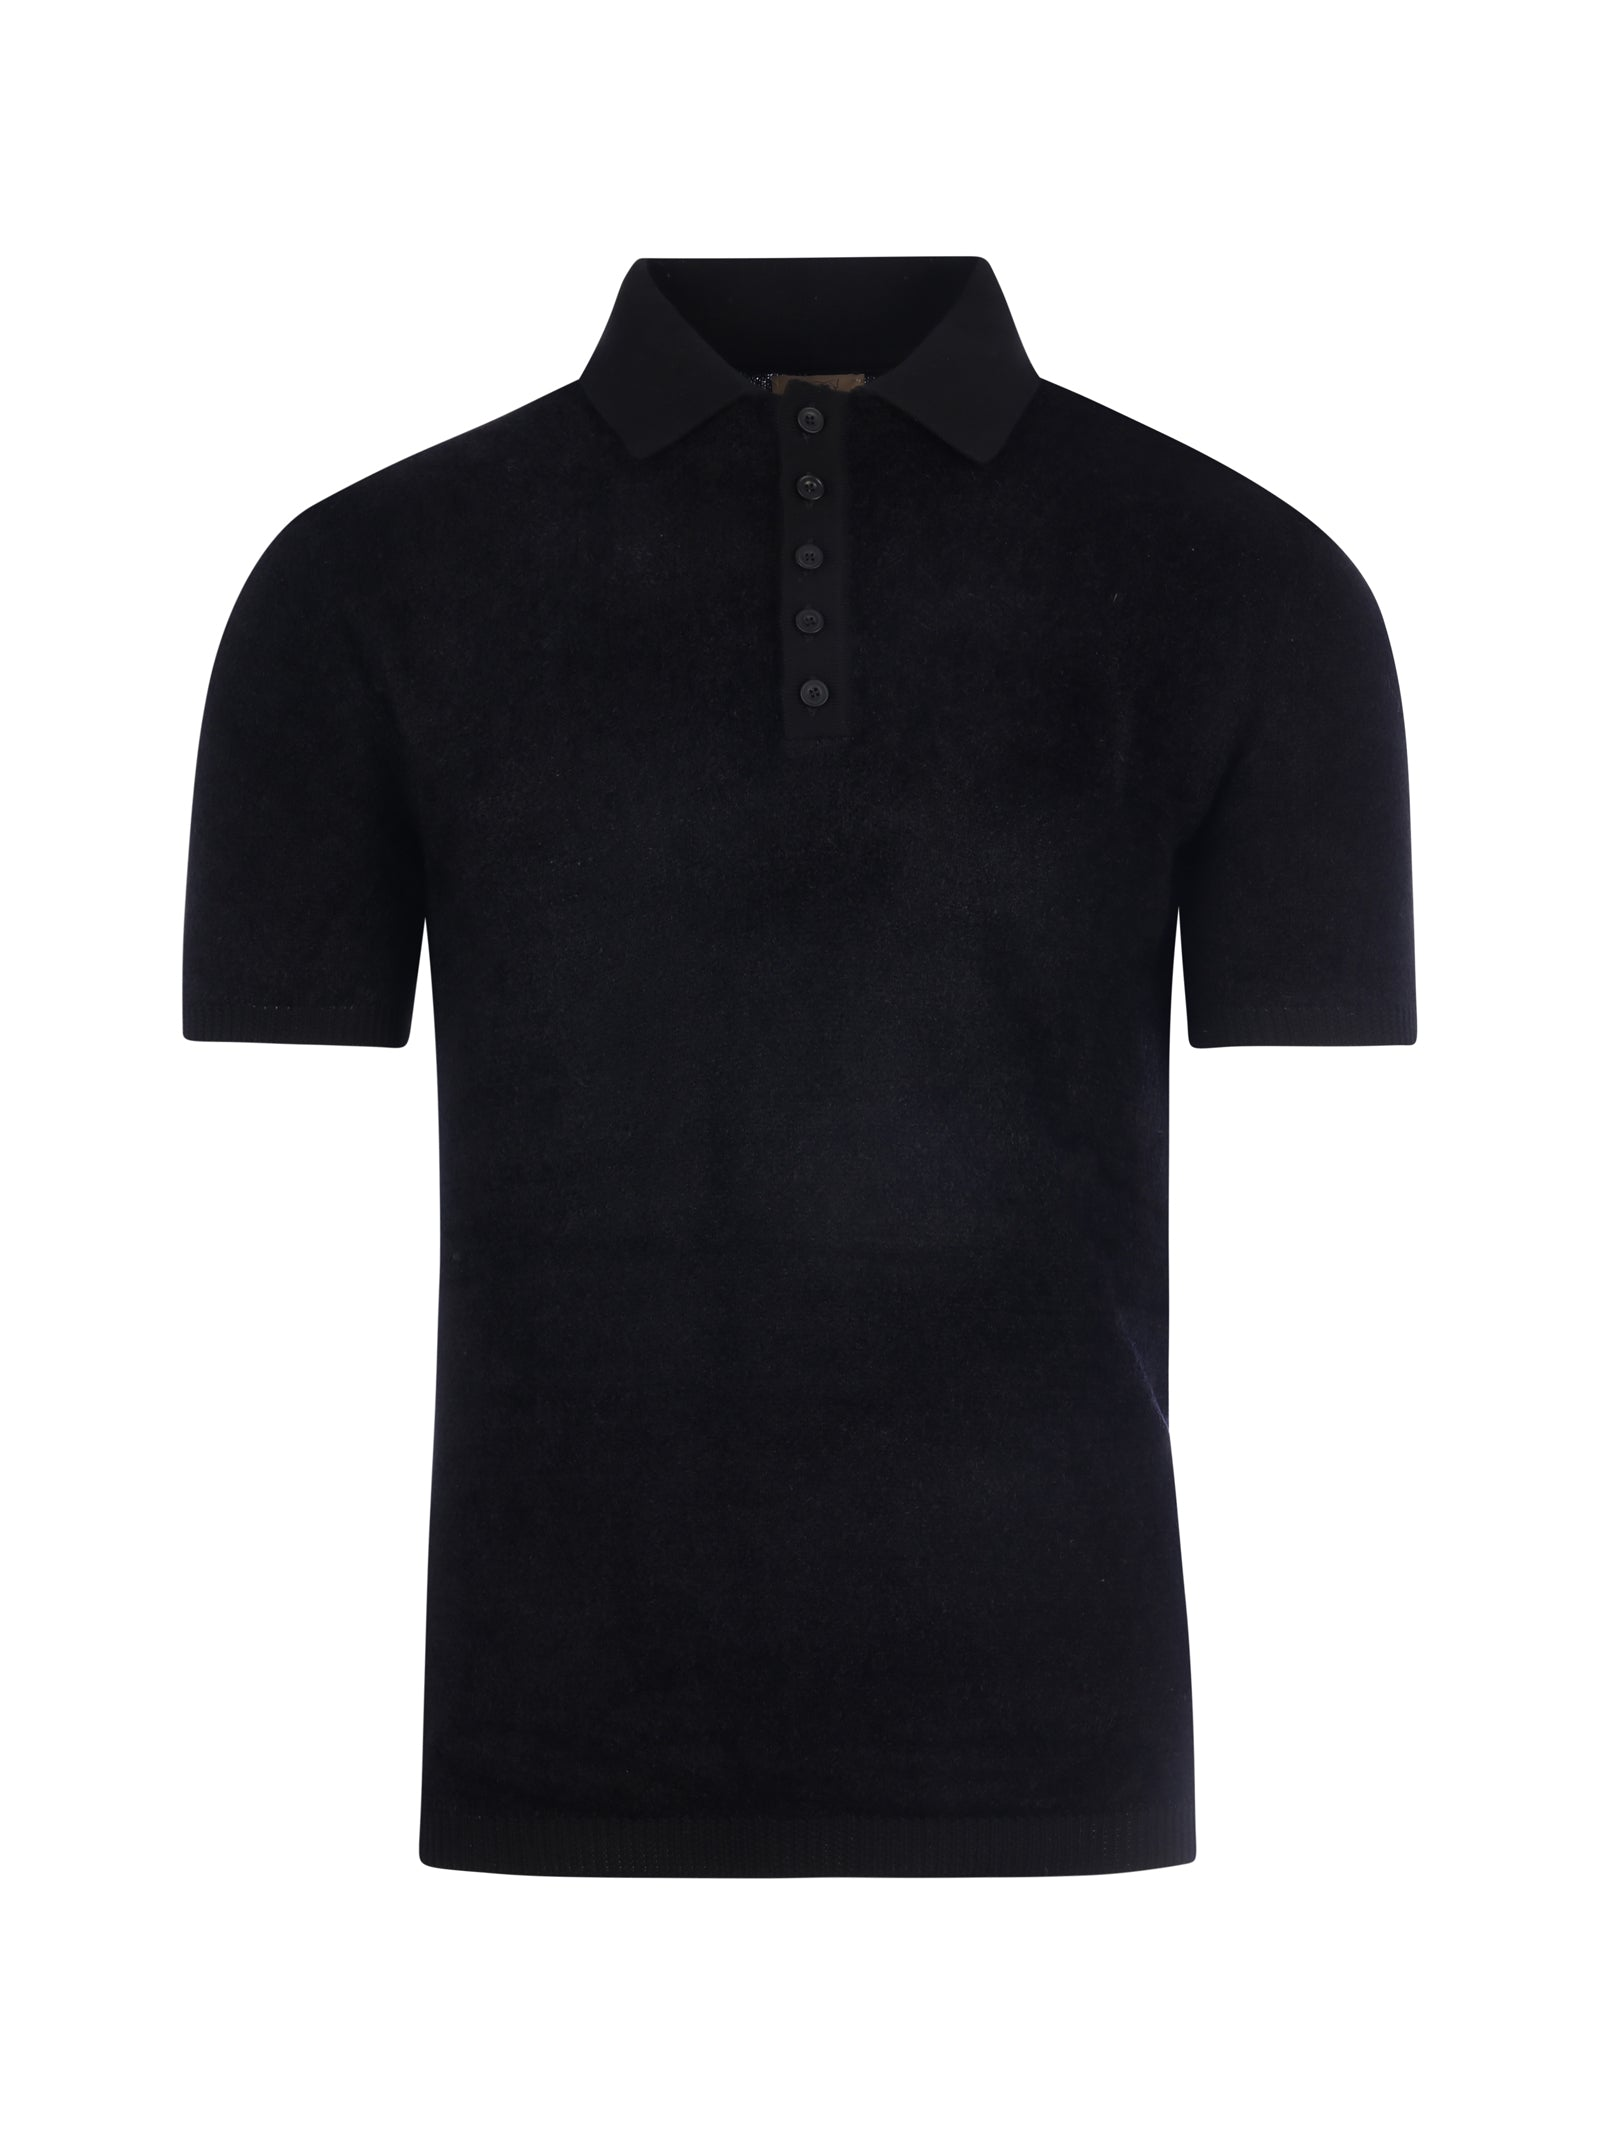 Polo shirt with short sleeves